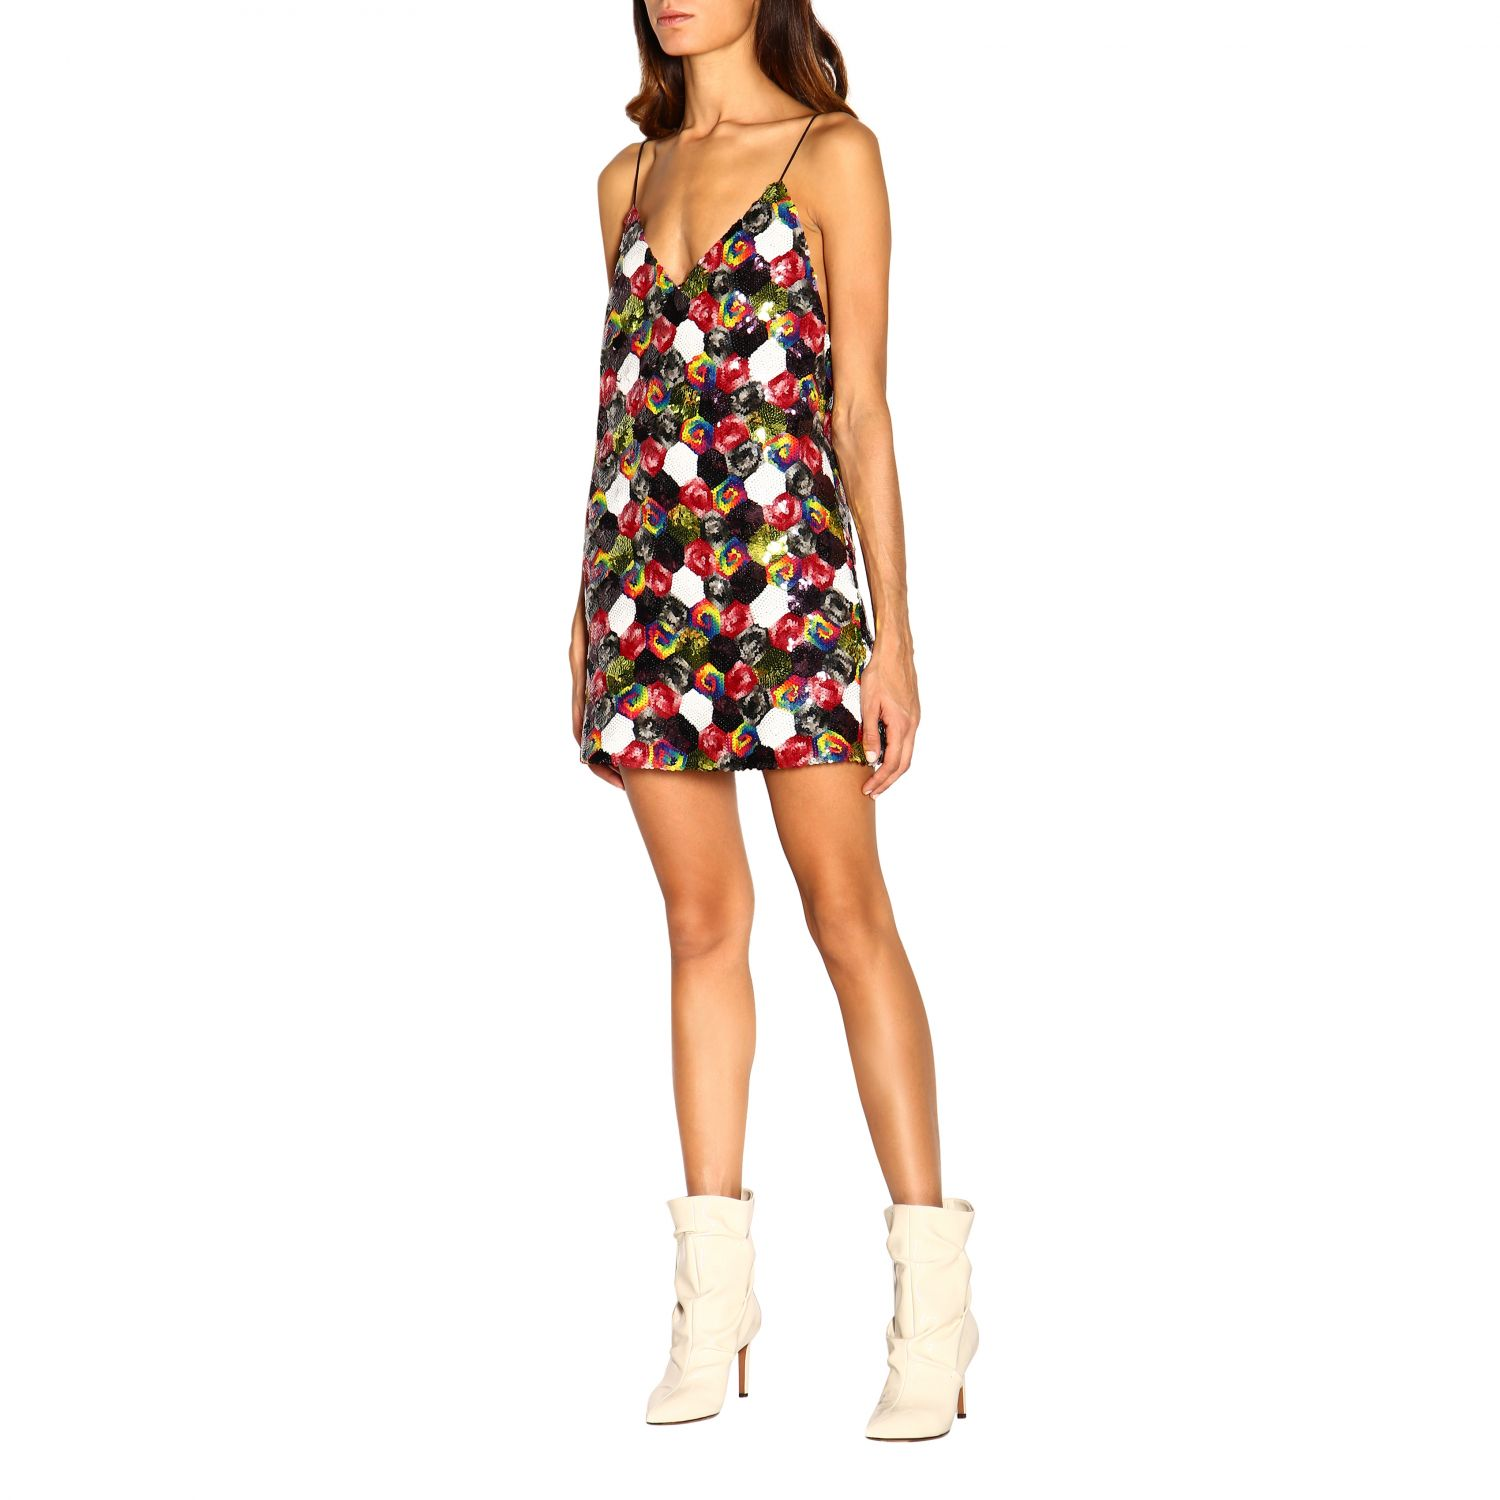 Robes femme Rotate multicolore 3